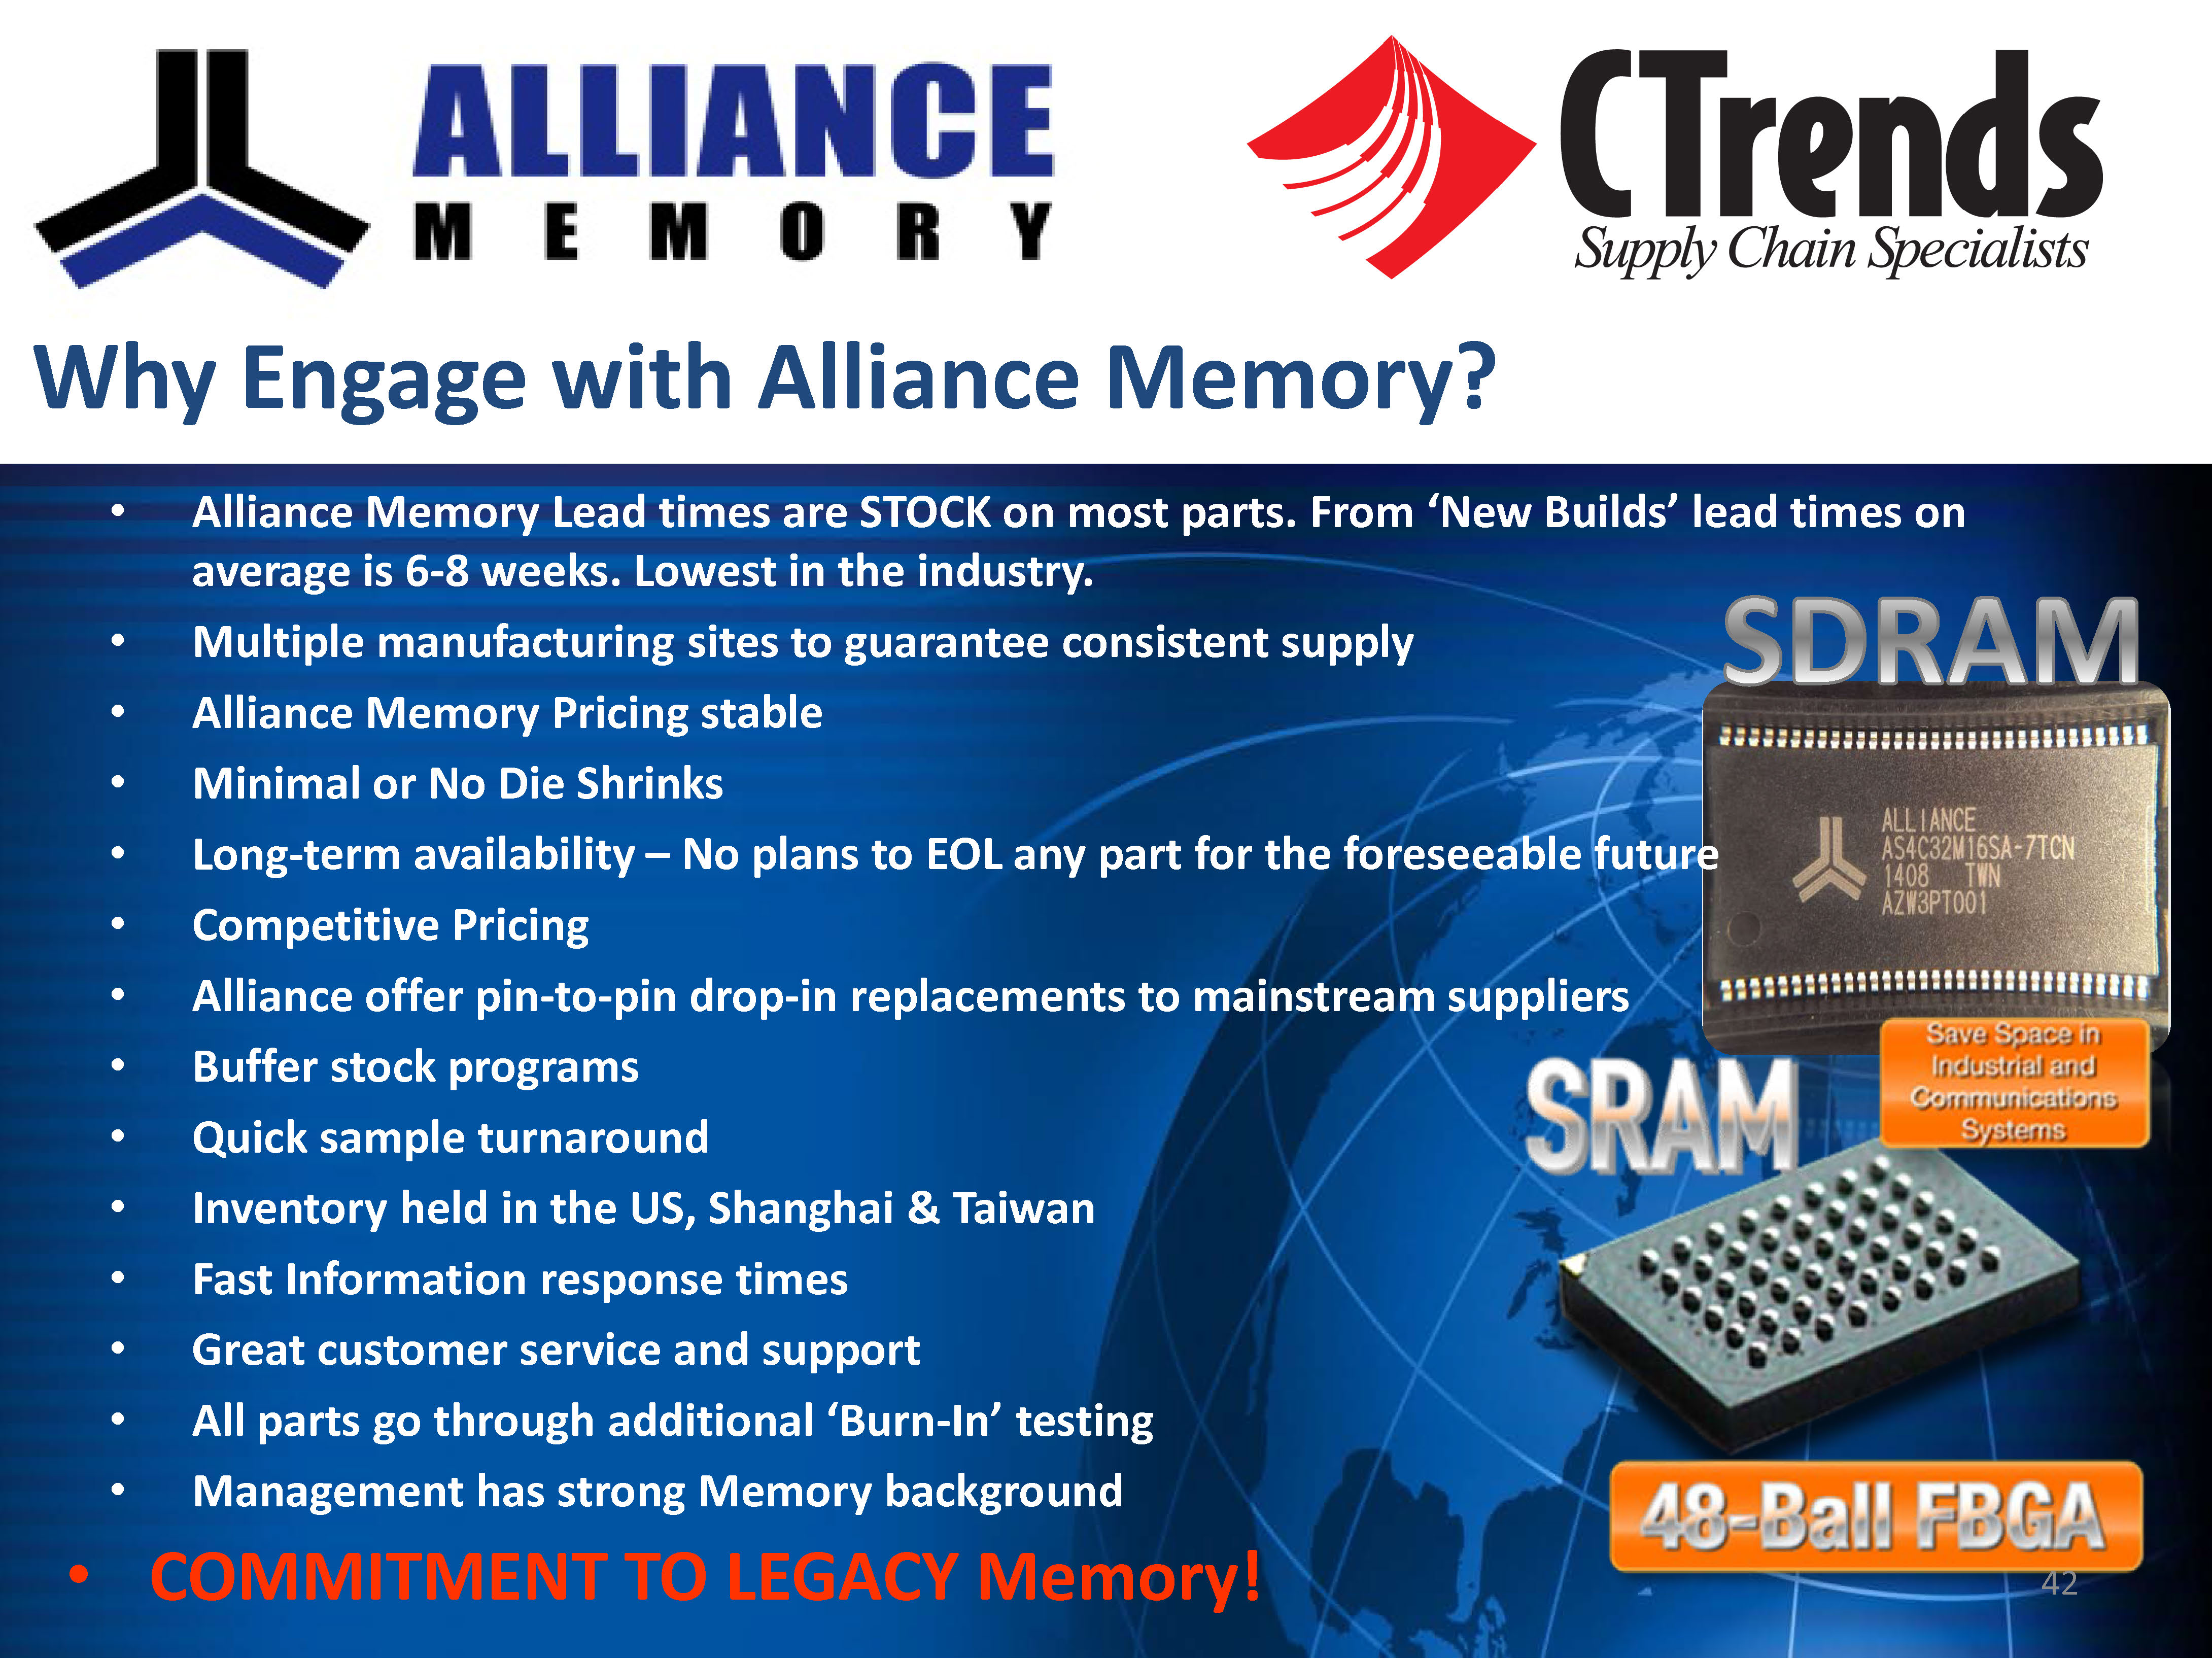 Why buy Alliance Memory?